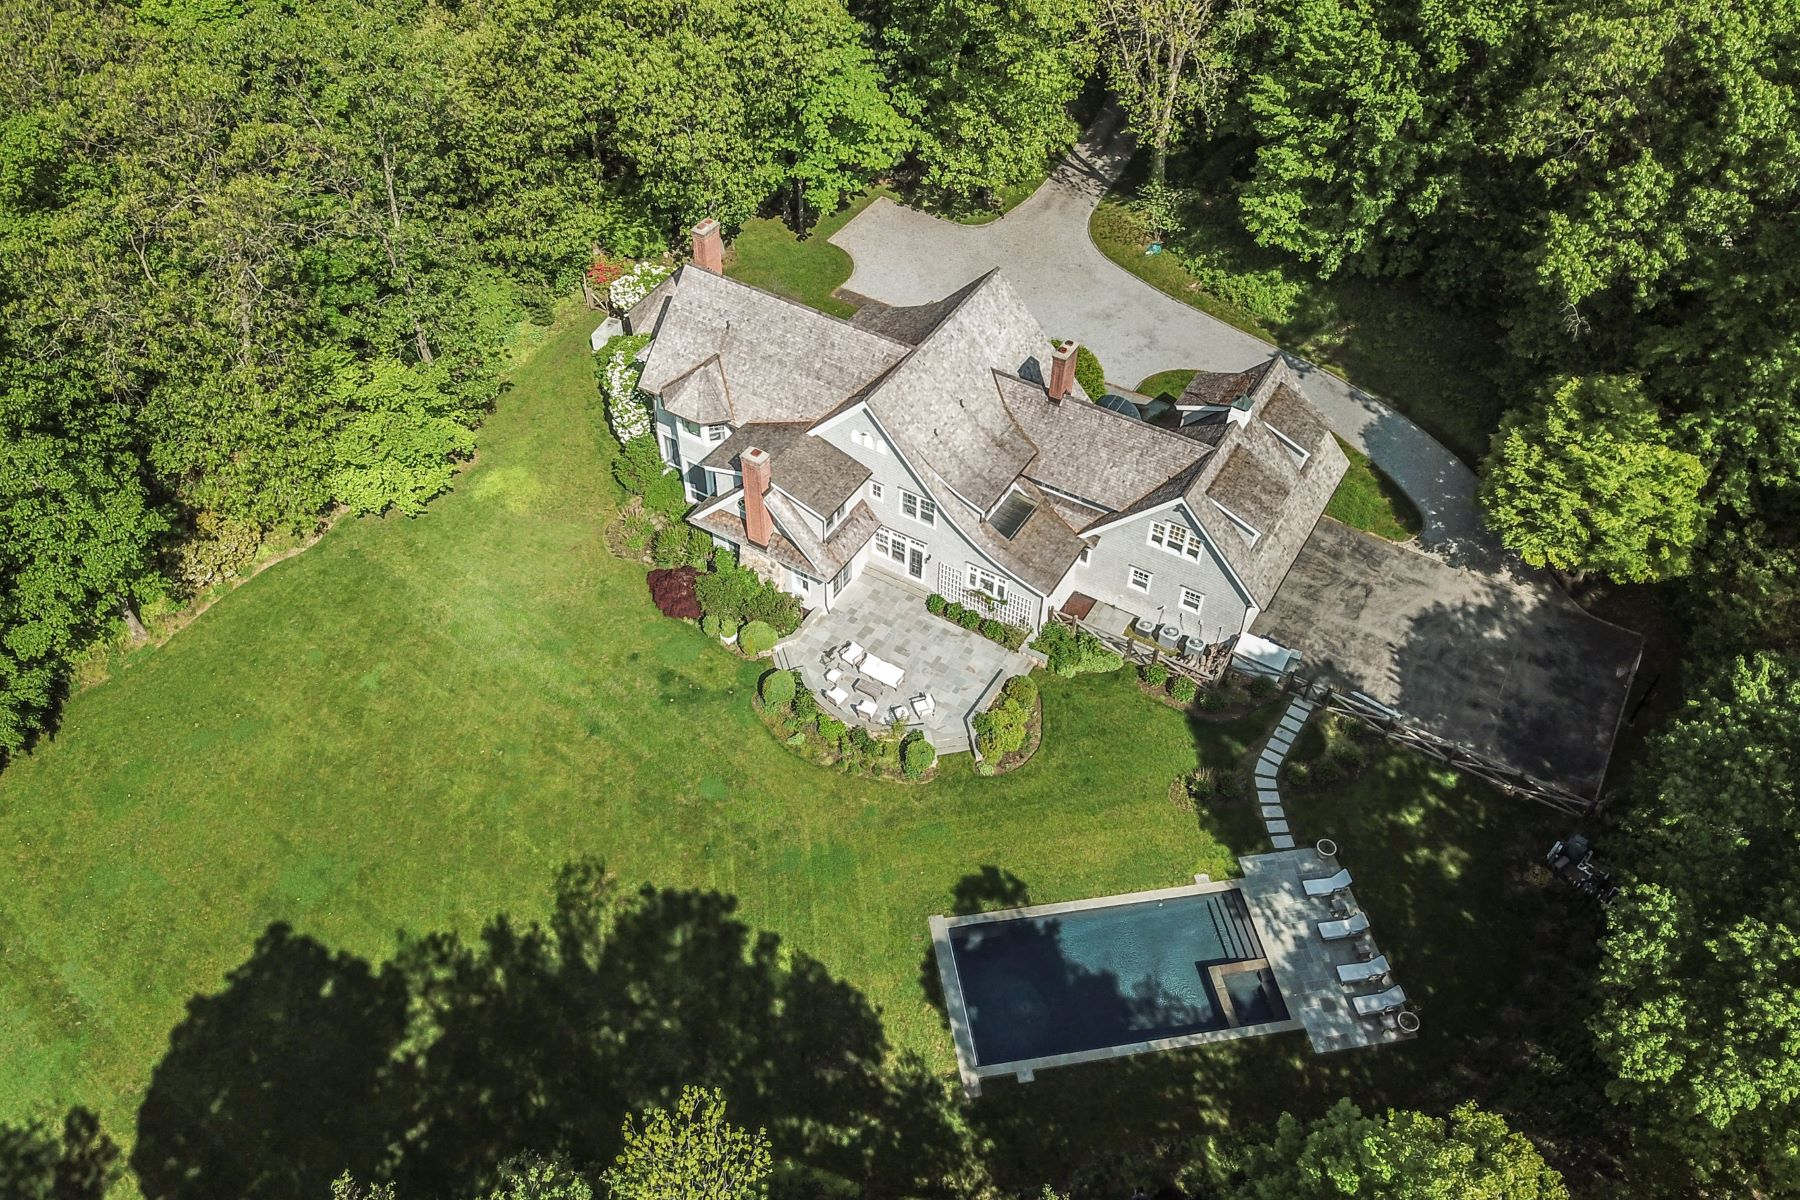 Single Family Homes for Sale at 284 Stone Hill Road Pound Ridge, New York 10576 United States